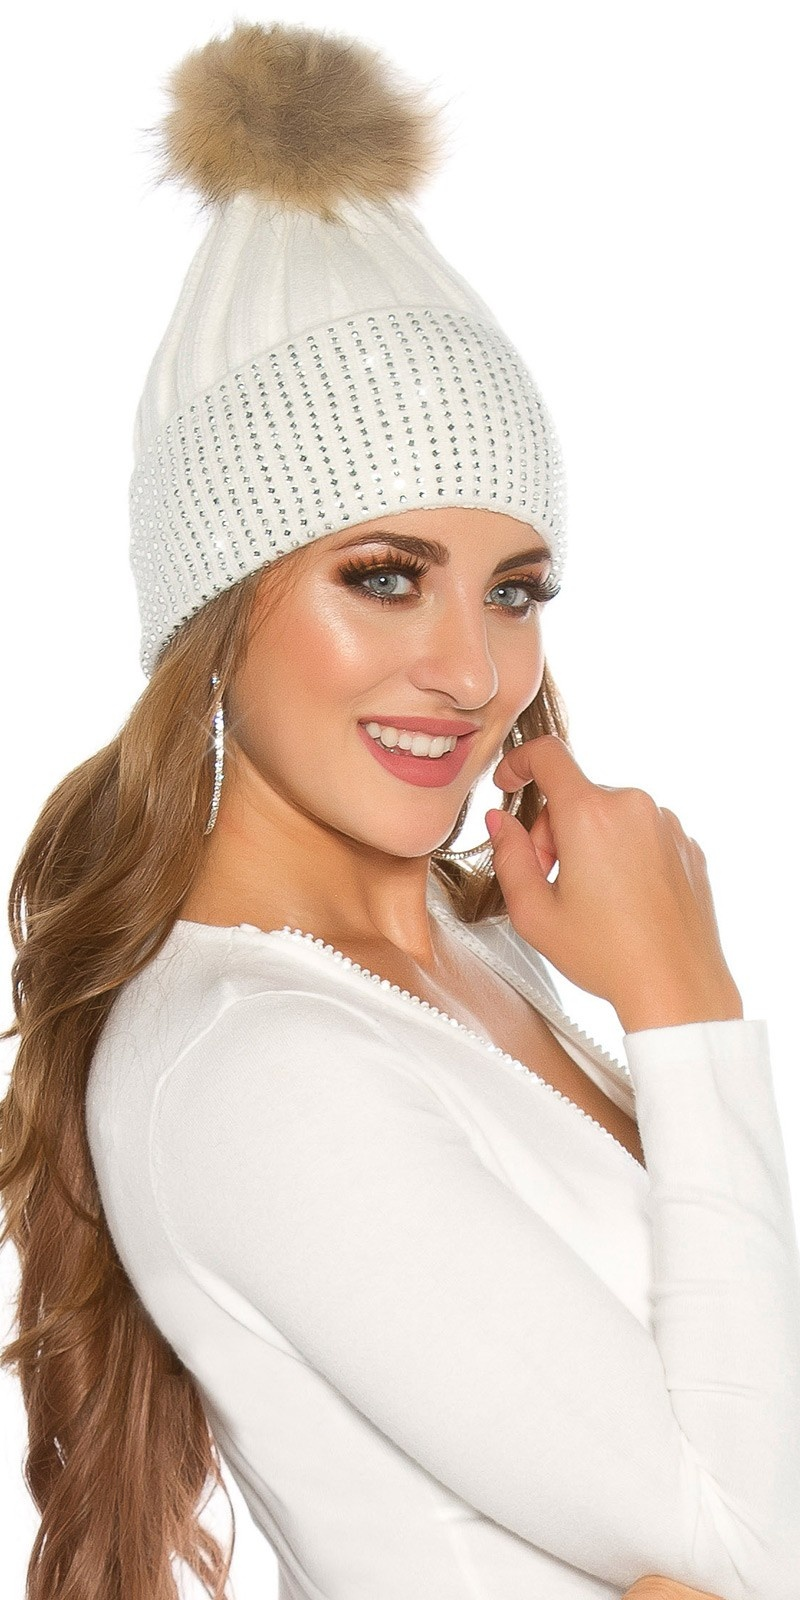 Trendy knit cap w. detachable PomPom&rhinestones White